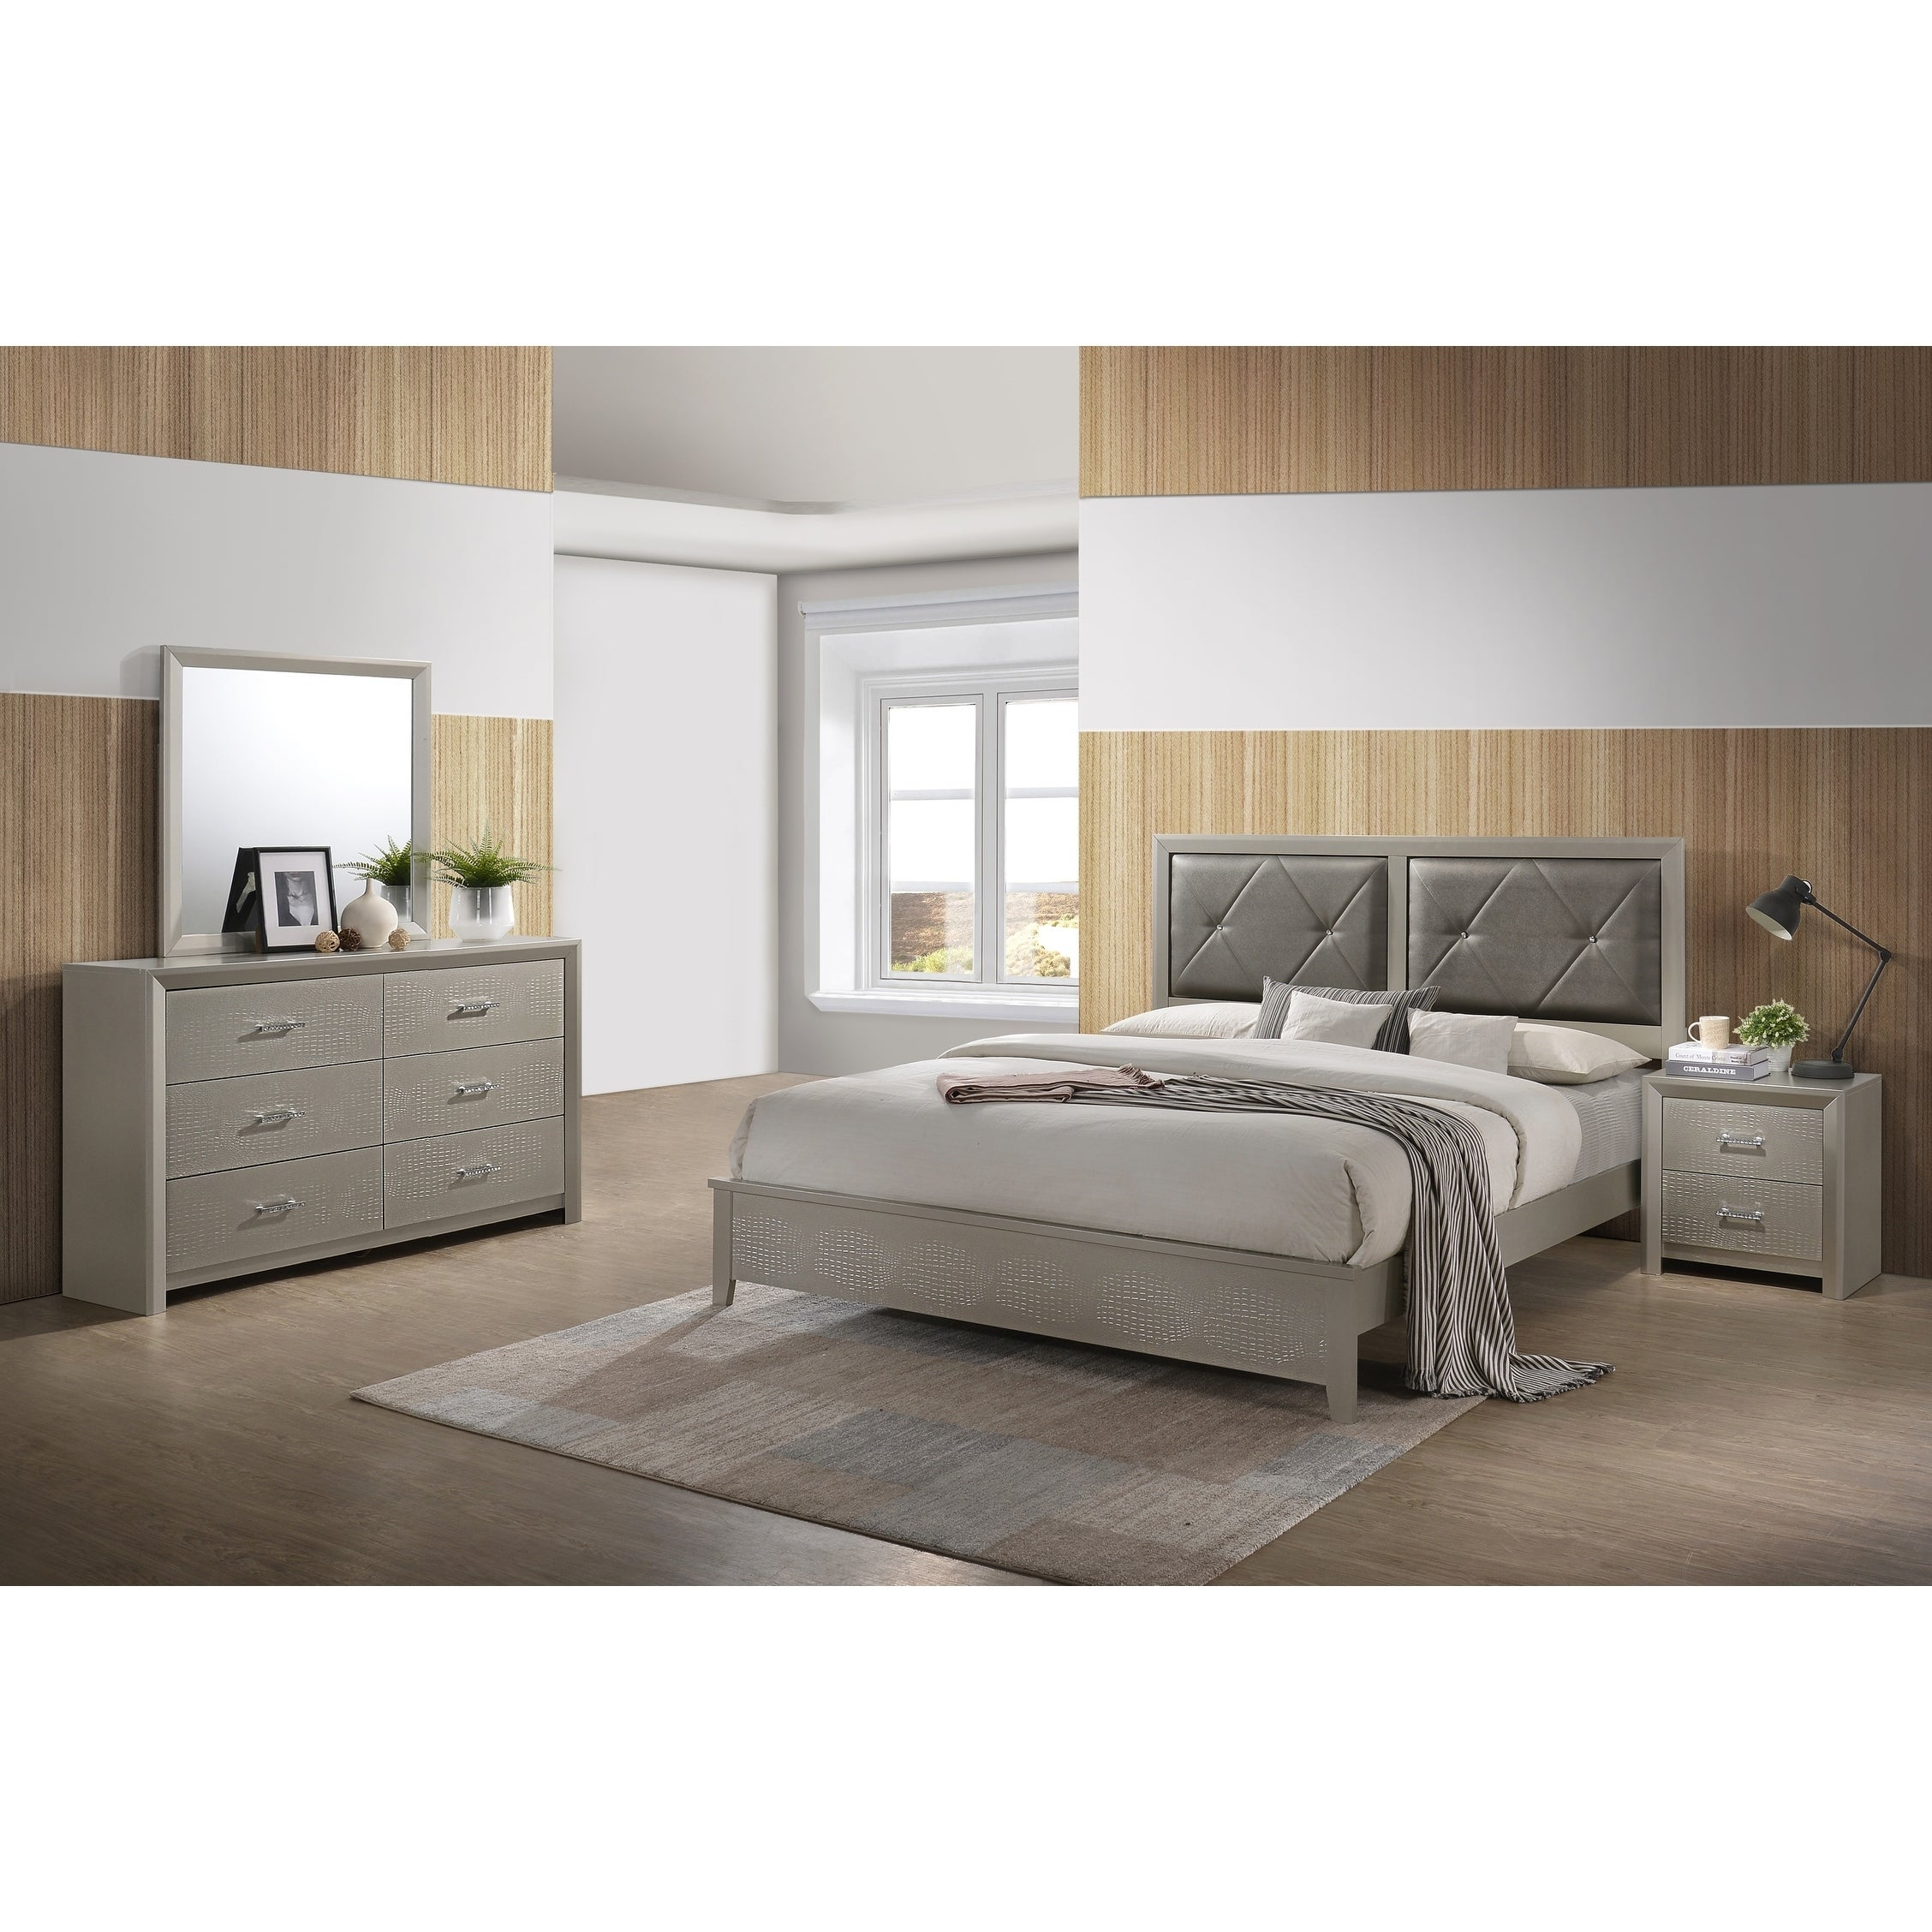 Best Quality Furniture Champagne Metallic 4 Piece Bedroom Set Free Shipping Today 26280513